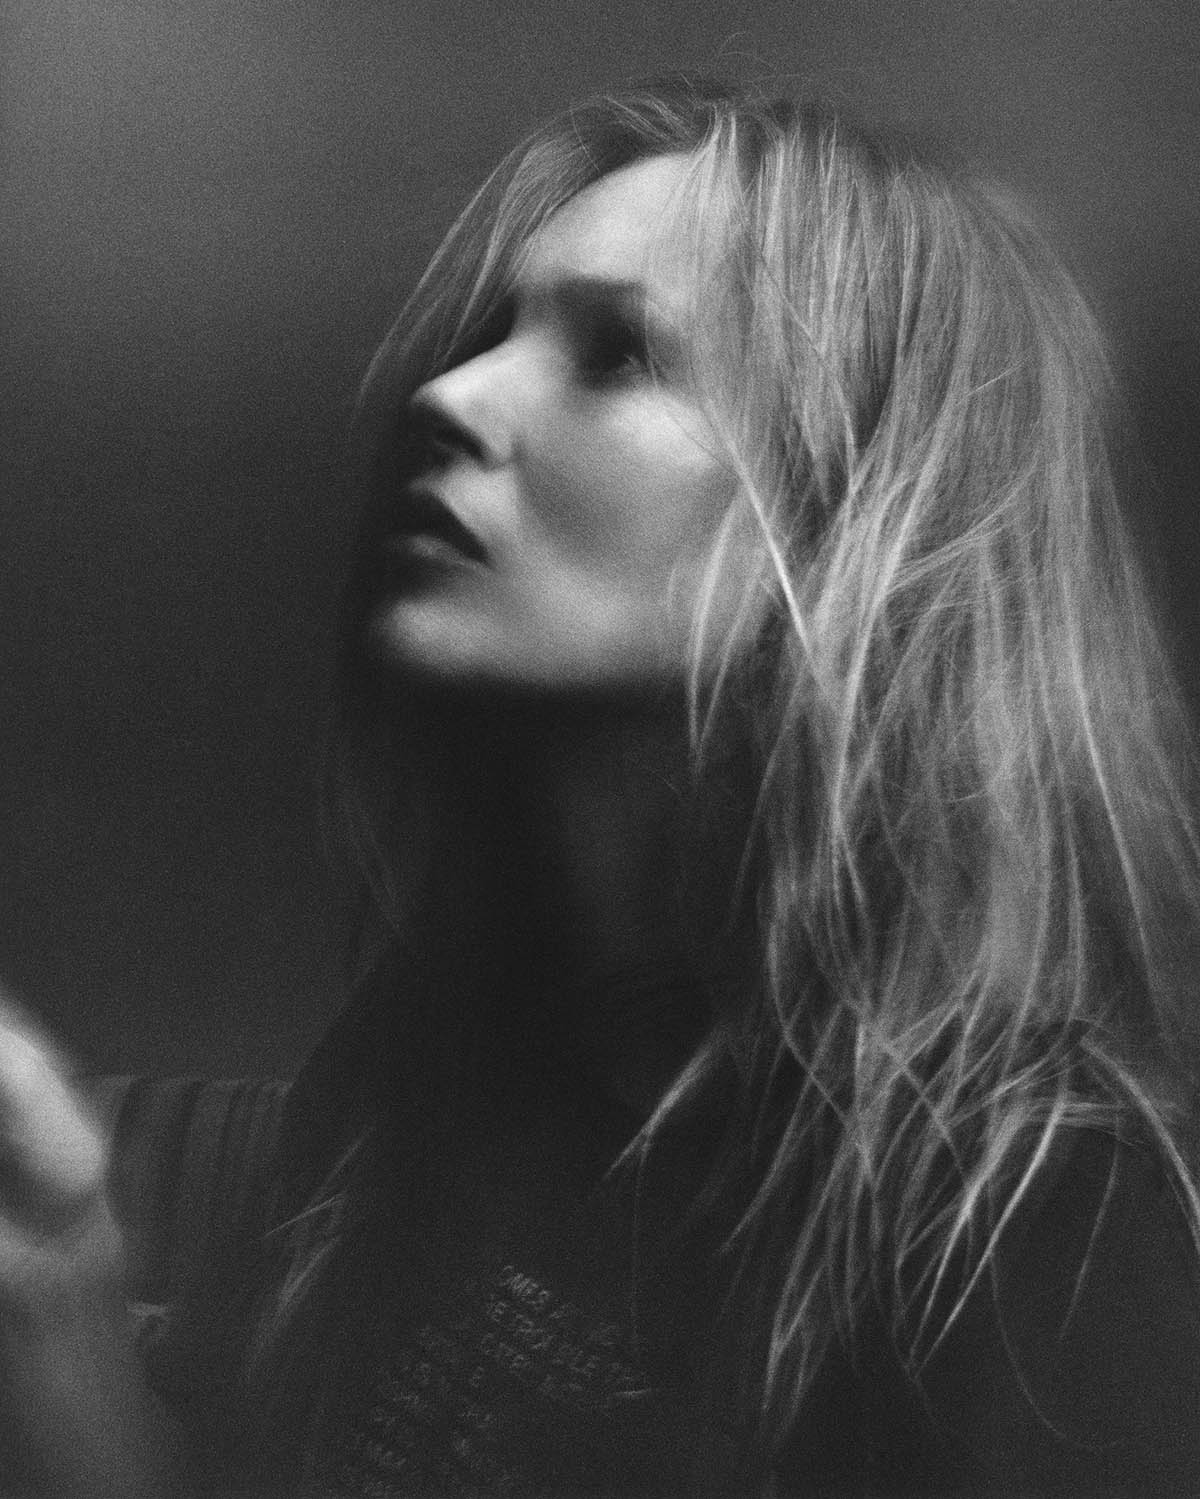 Kate Moss covers i-D Magazine Issue 362 by Jamie Hawkesworth